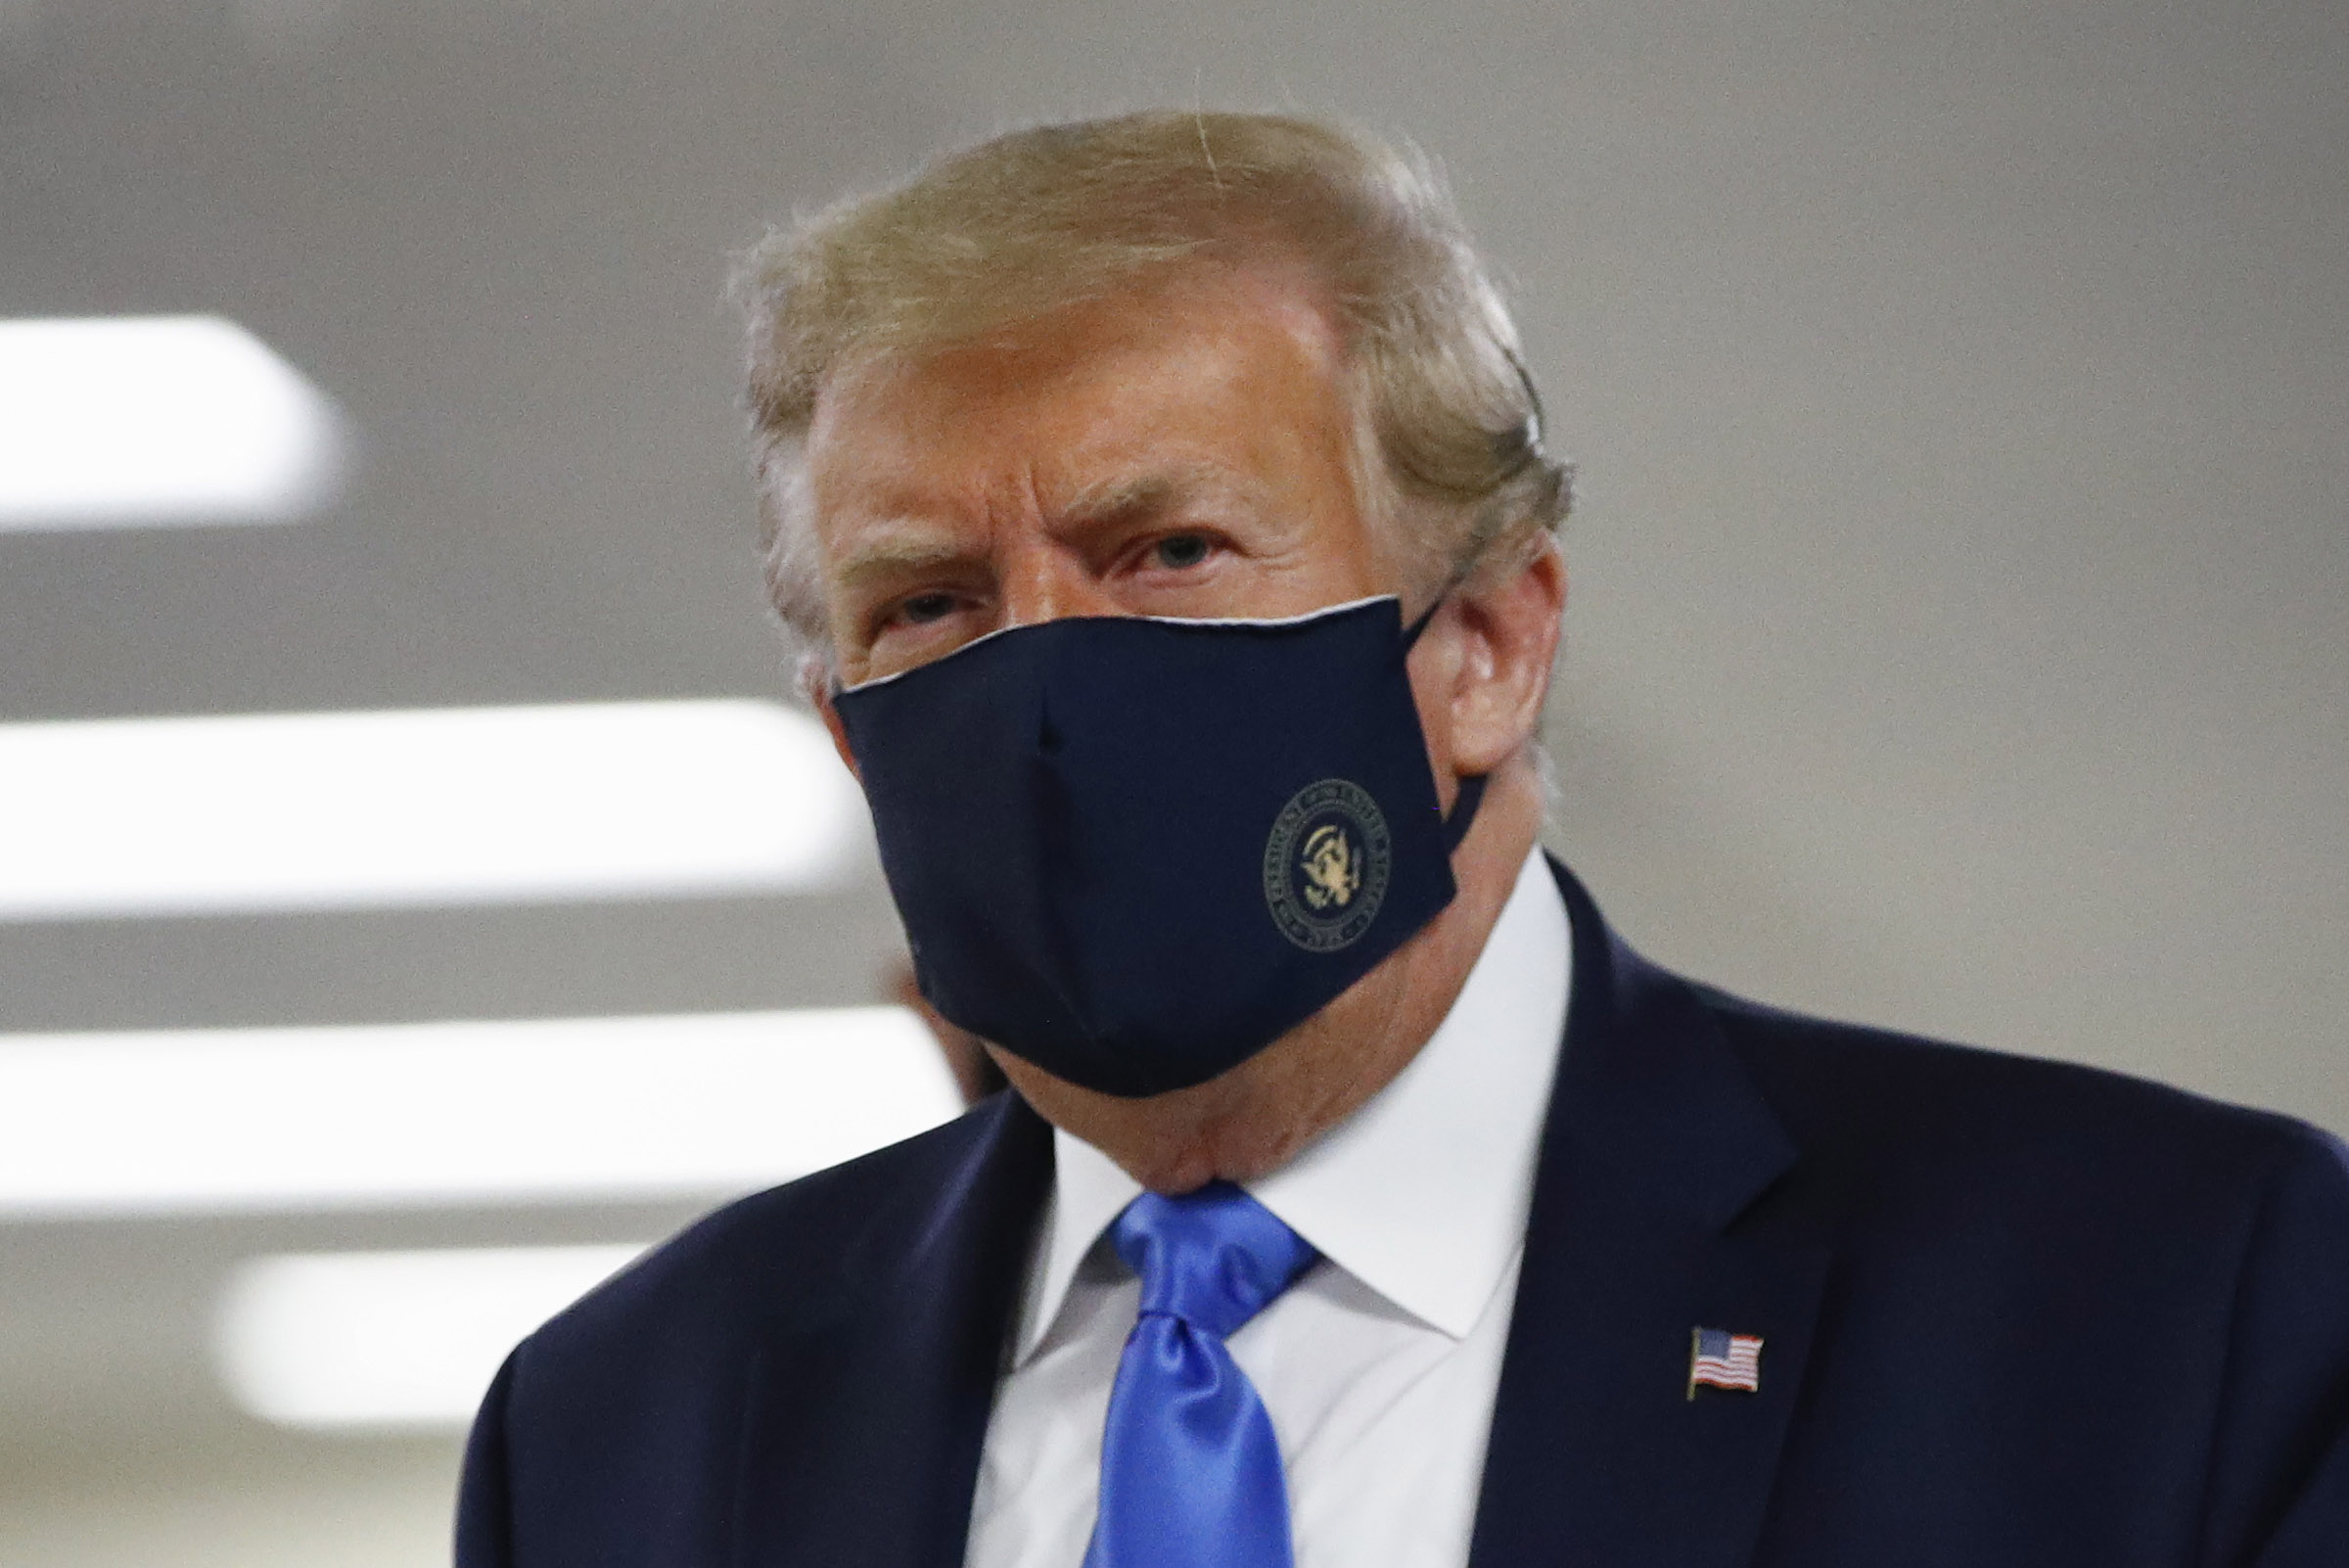 President Donald Trump wore a face mask during a visit at Walter Reed National Military Medical Center in Bethesda, Maryland, on Saturday, July 11.